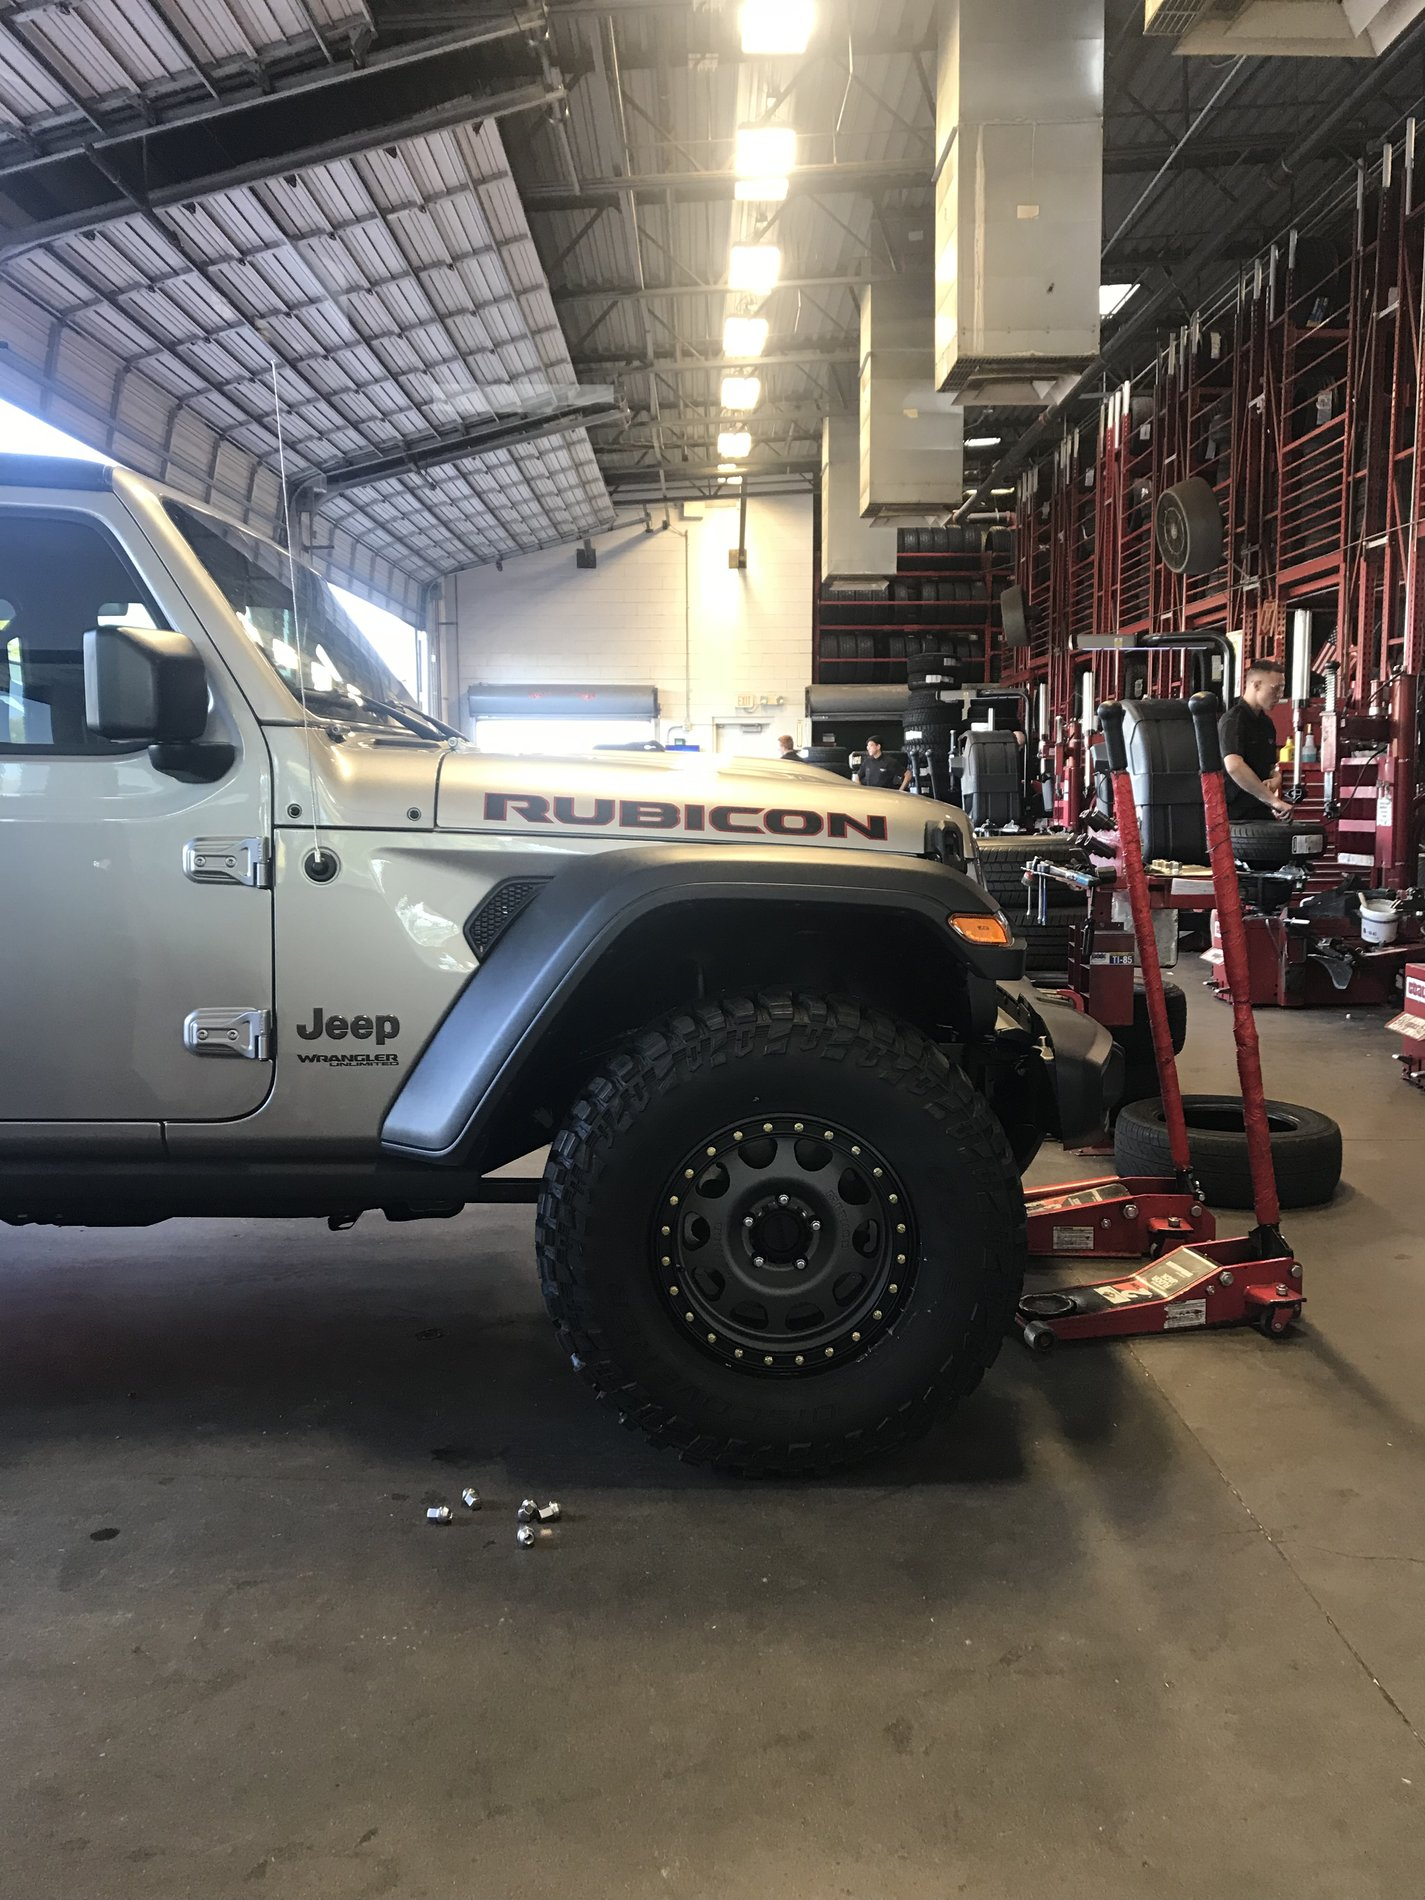 JL Rubicon on Method Wheels...let's see em! | Page 2 ...